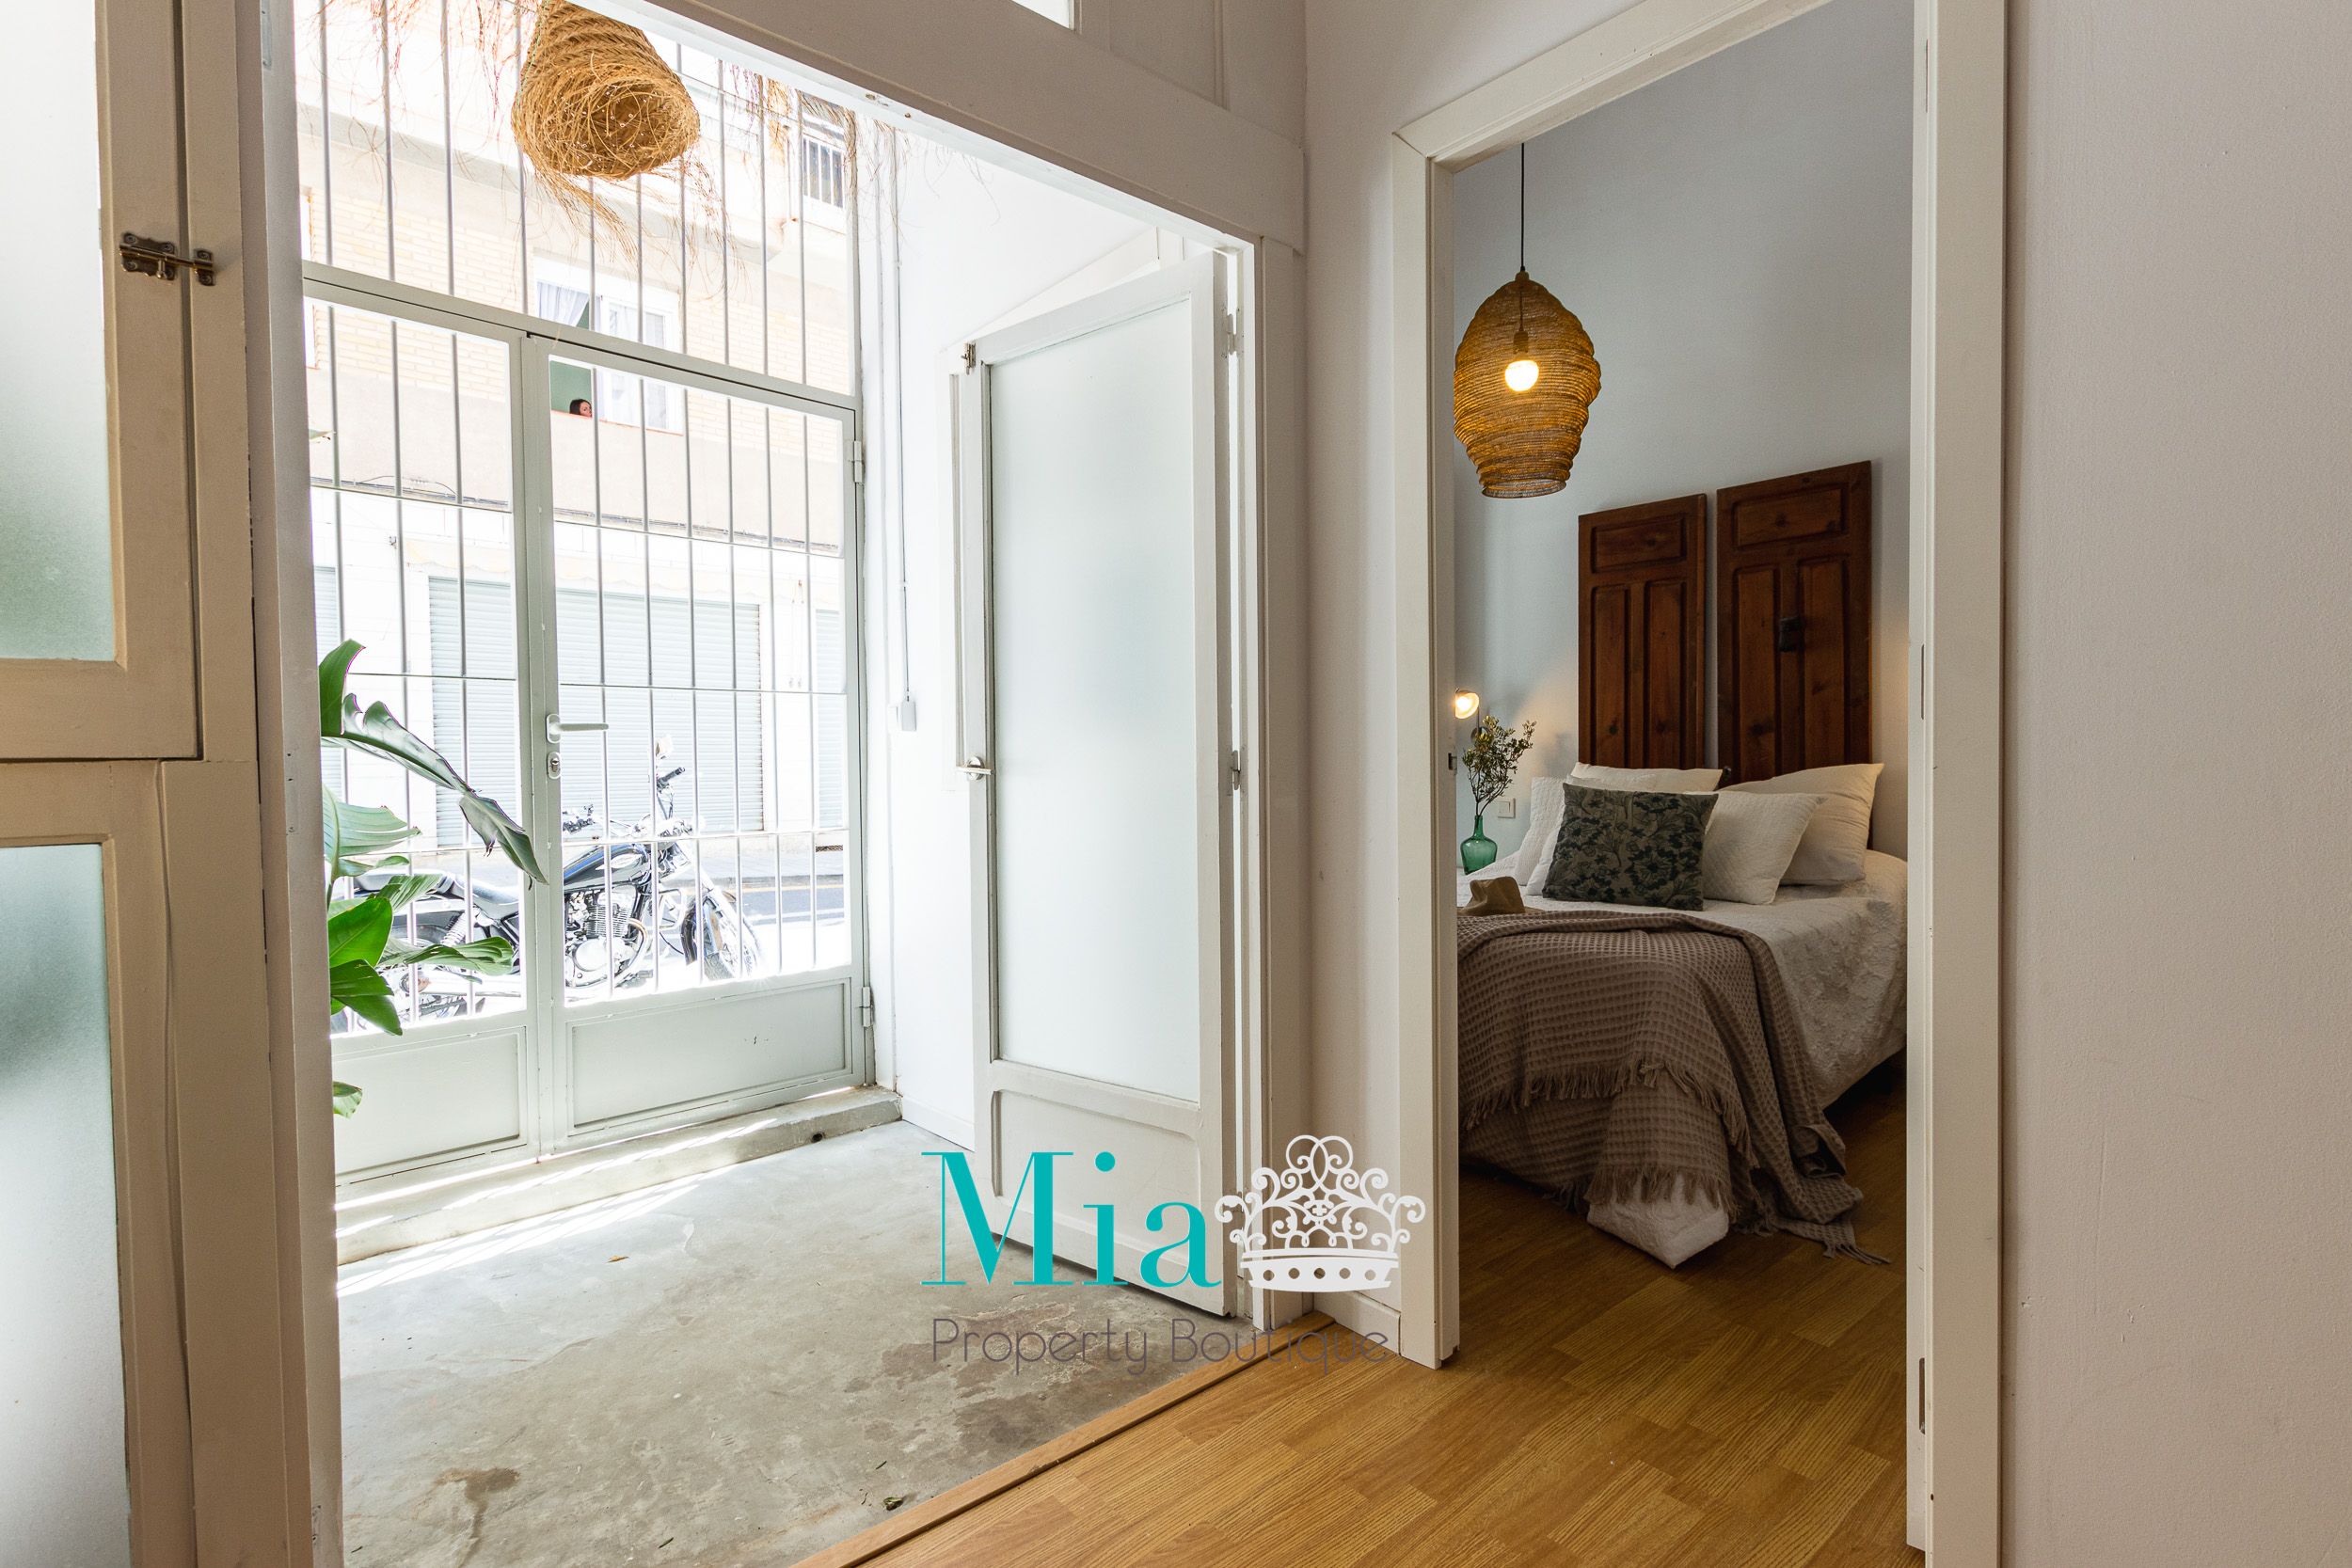 Stylish and Charming Apartment for Sale!